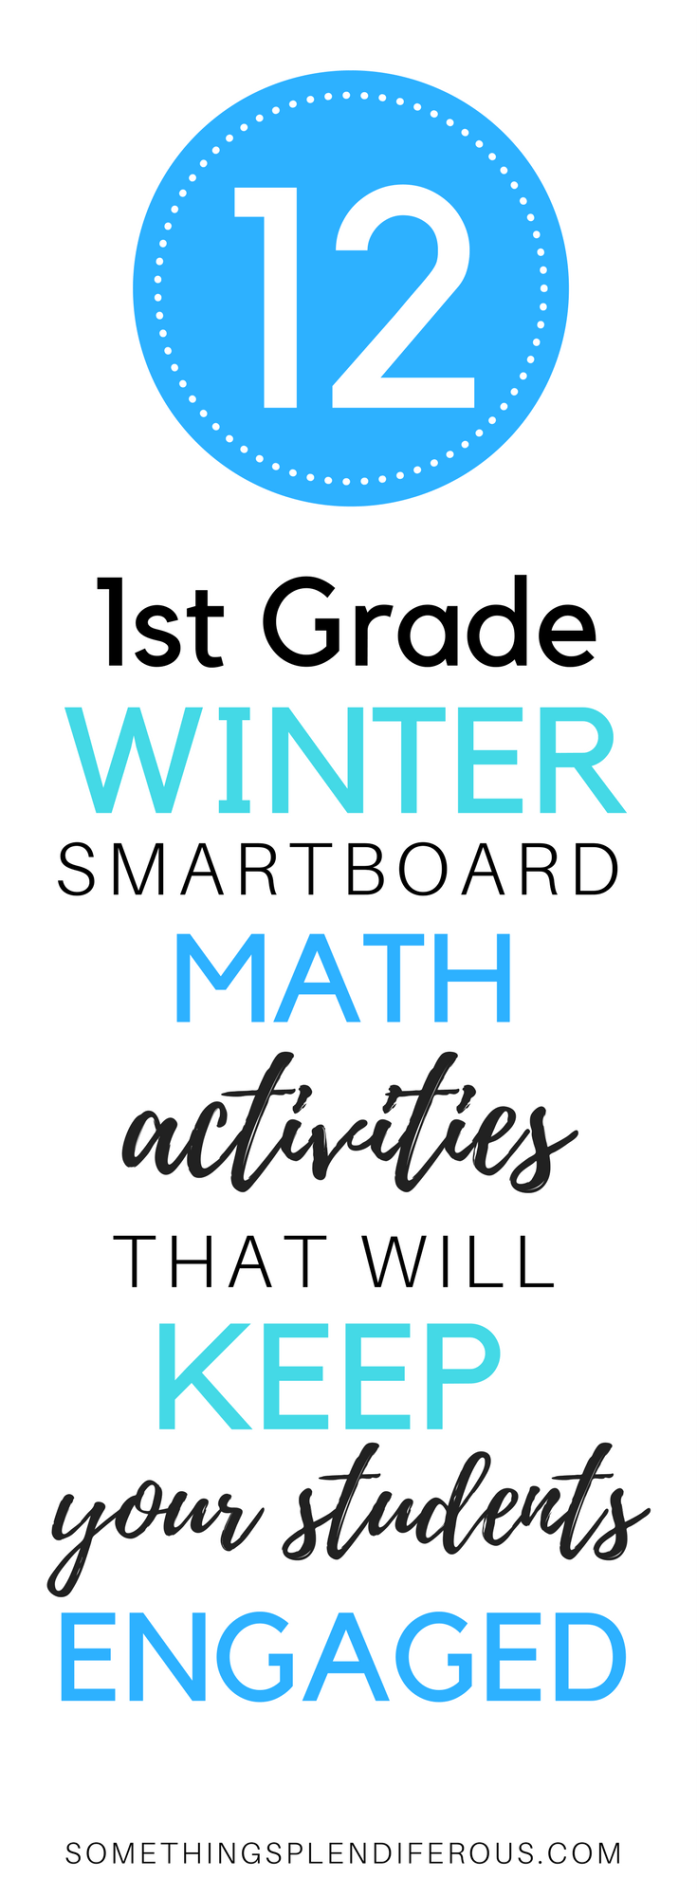 12 1st Grade Winter Smartboard Math Activities That Will Keep Your Students Engaged